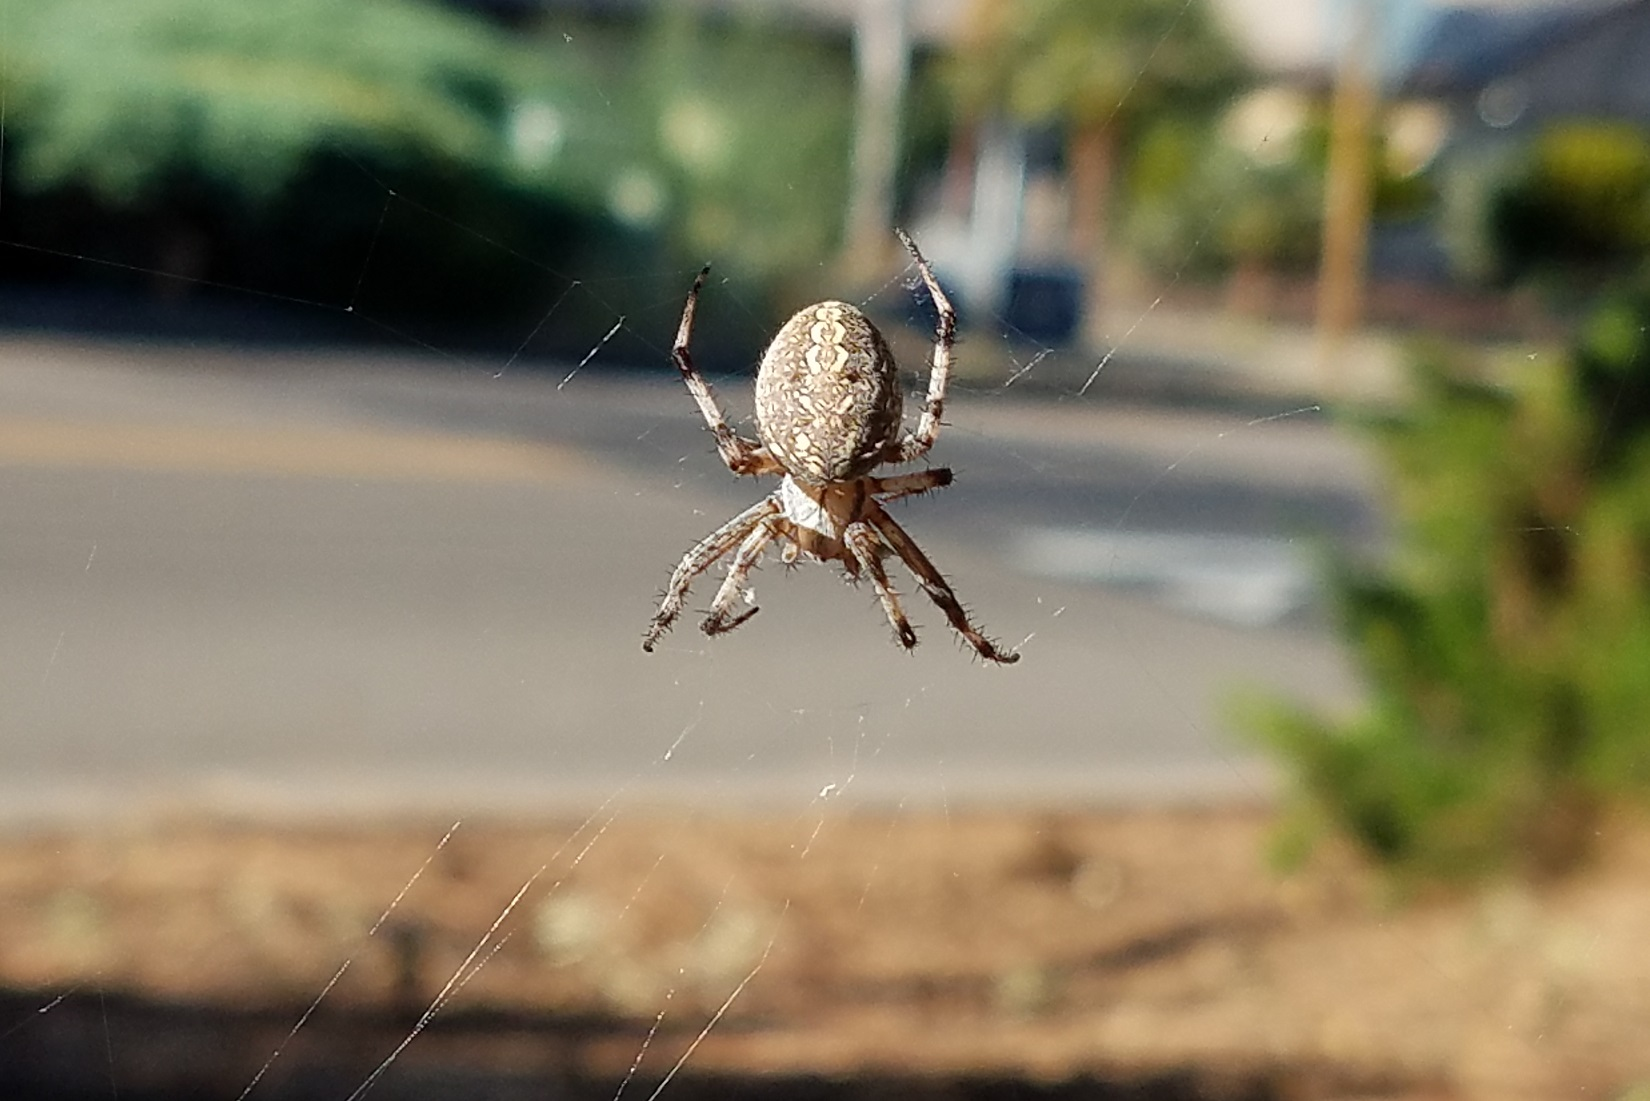 How To Get Rid Of Orb Weaver Spiders 2020 - Image By wikipedia